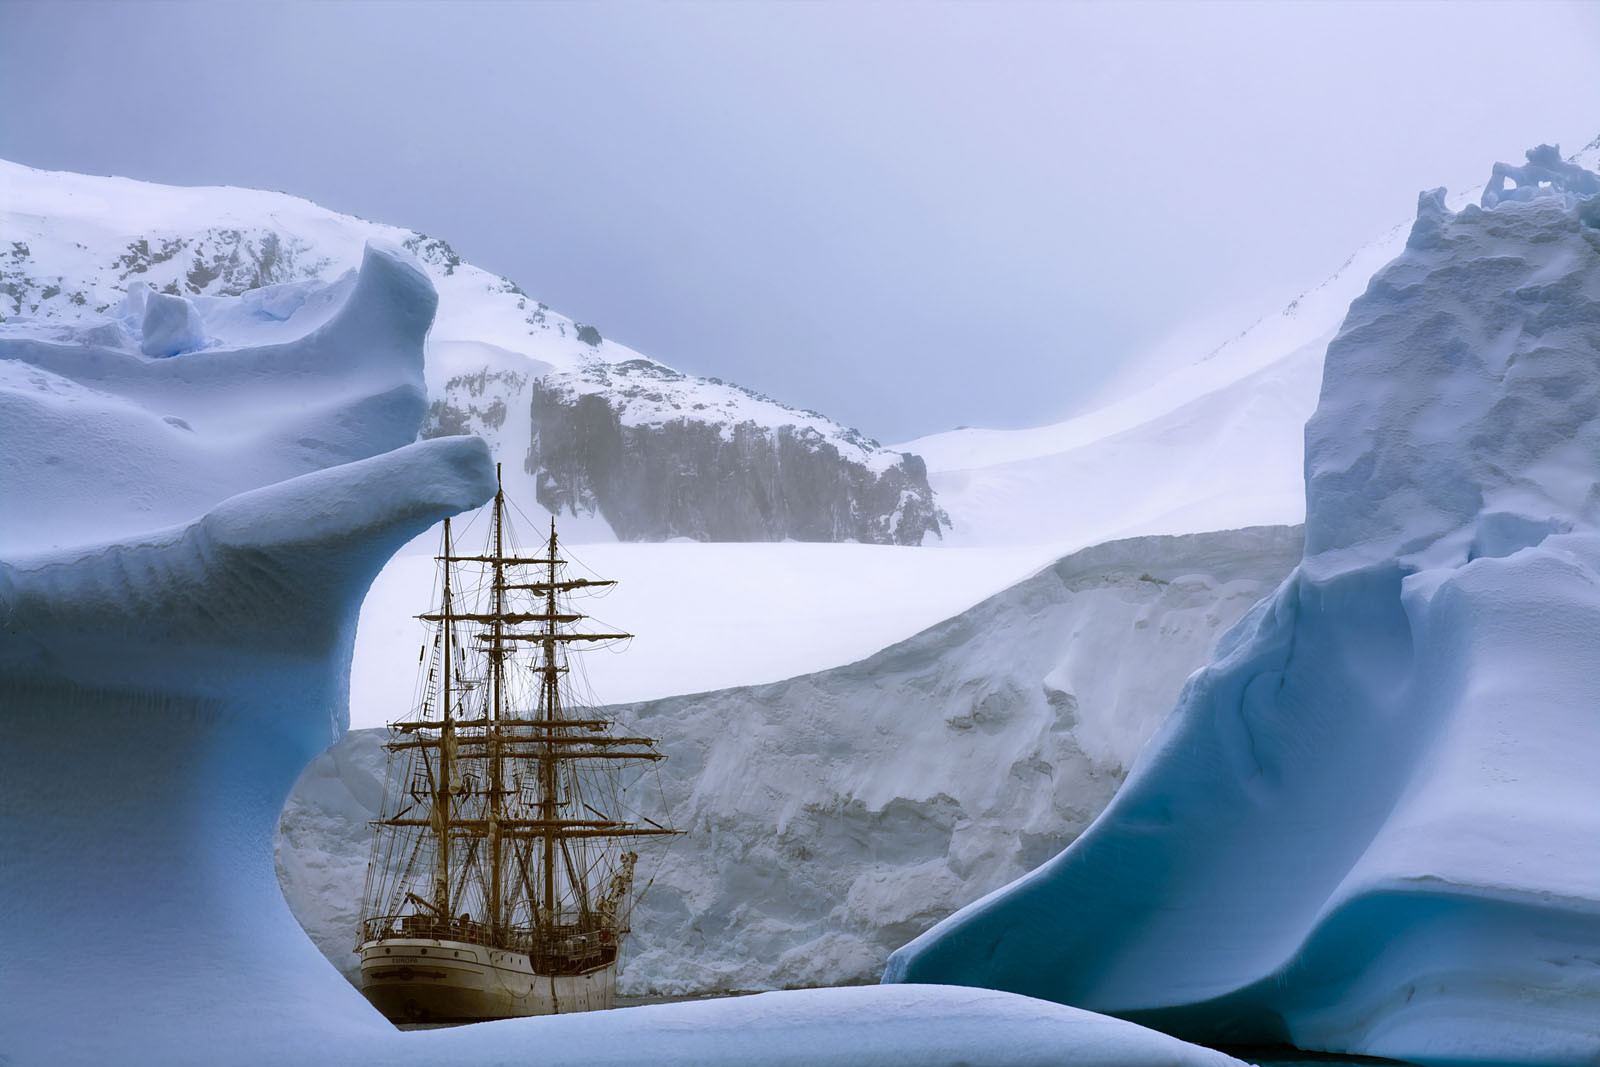 A Journey to the South Pole